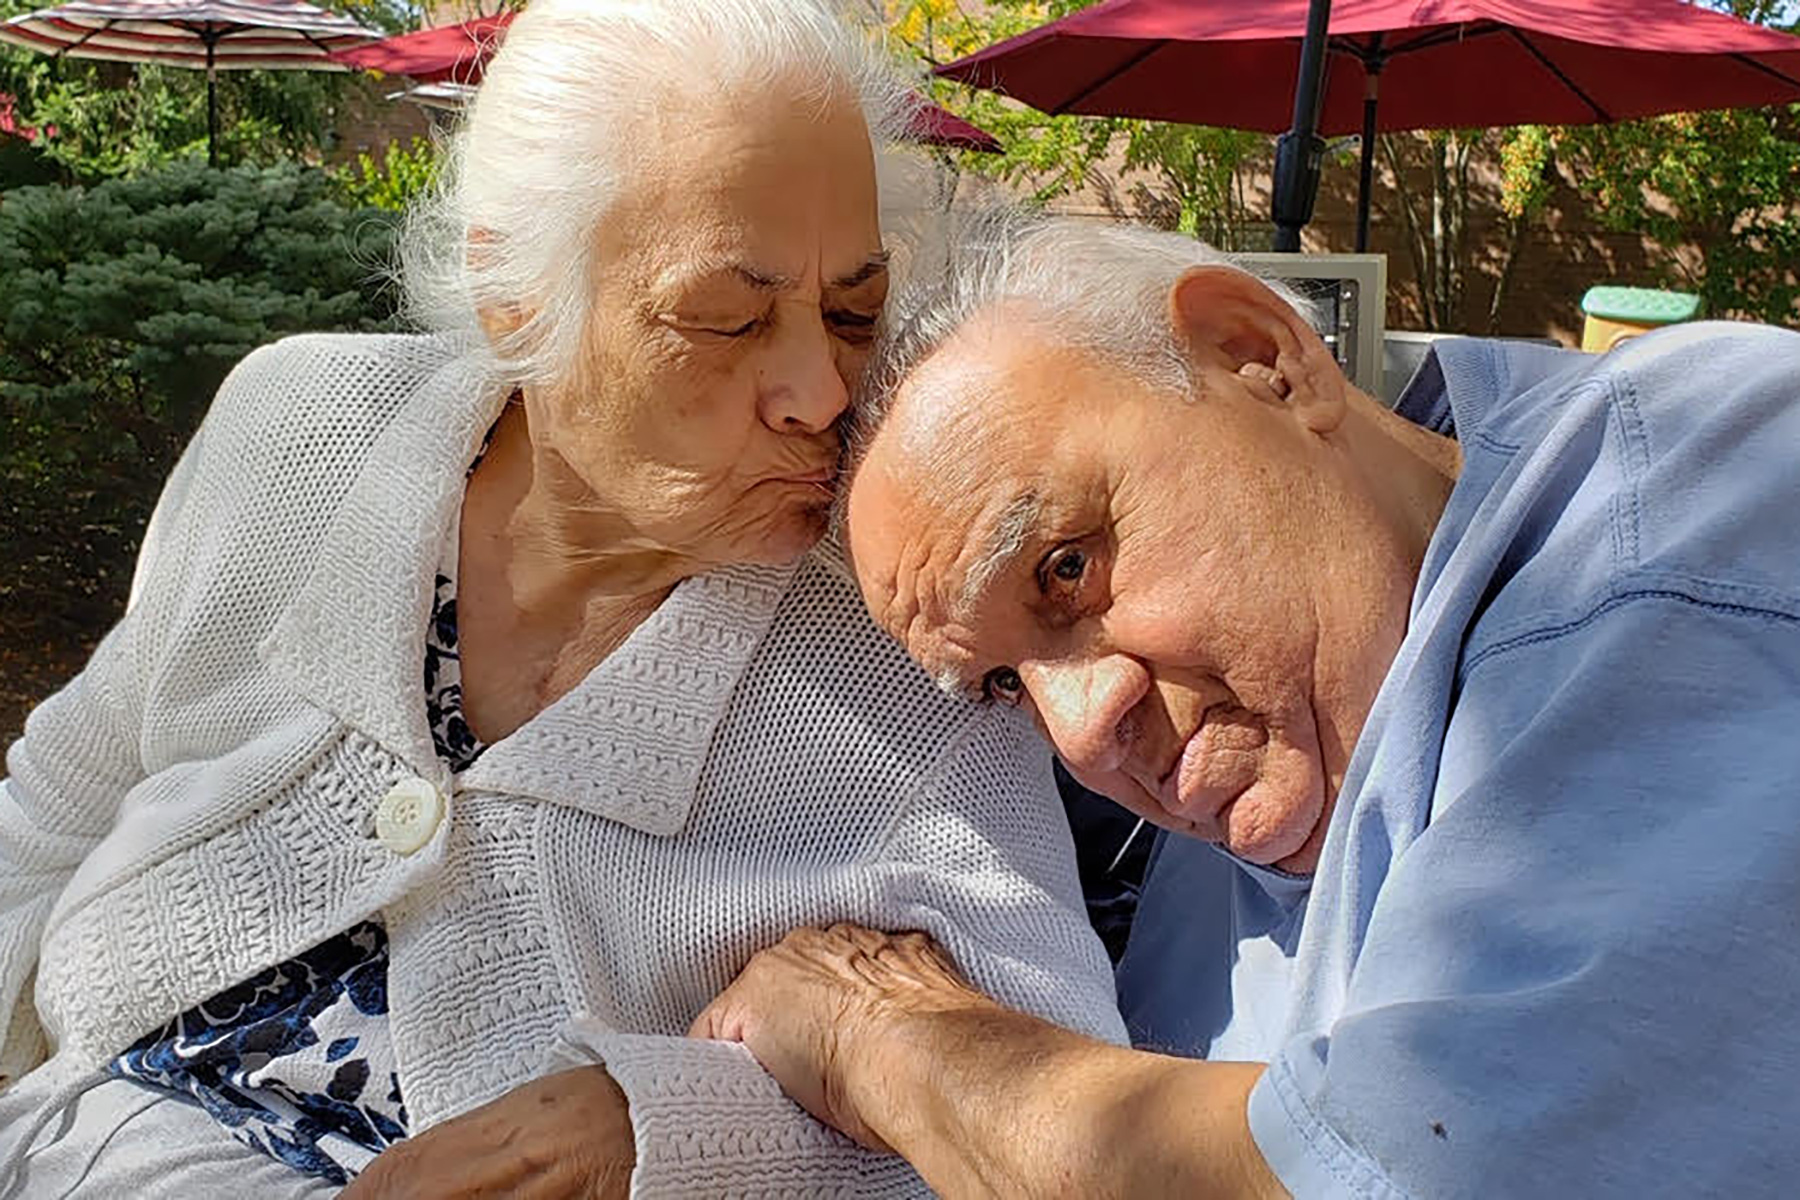 Julia Ramos' grandmother, Angelica Mendez, with her husband Pedro Mendez, on their 64th wedding anniversary.